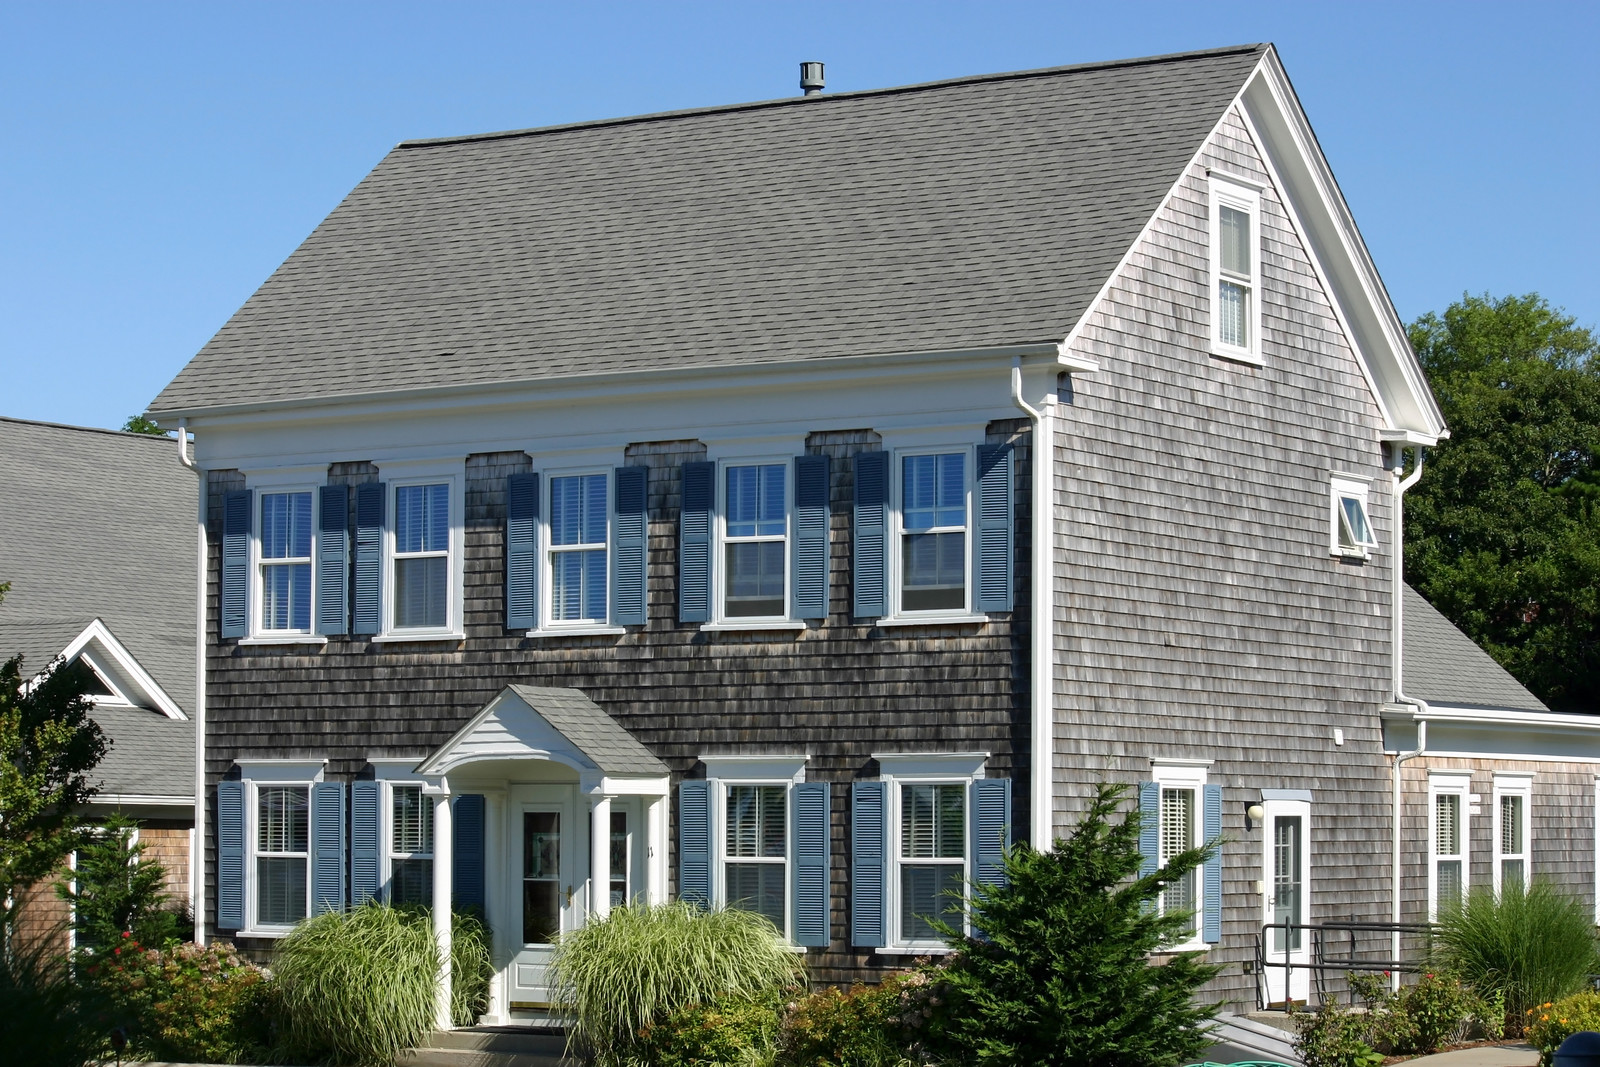 Gray cape cod house with wood shake siding with blue skies with shrubs and decorative grass throughout the yard